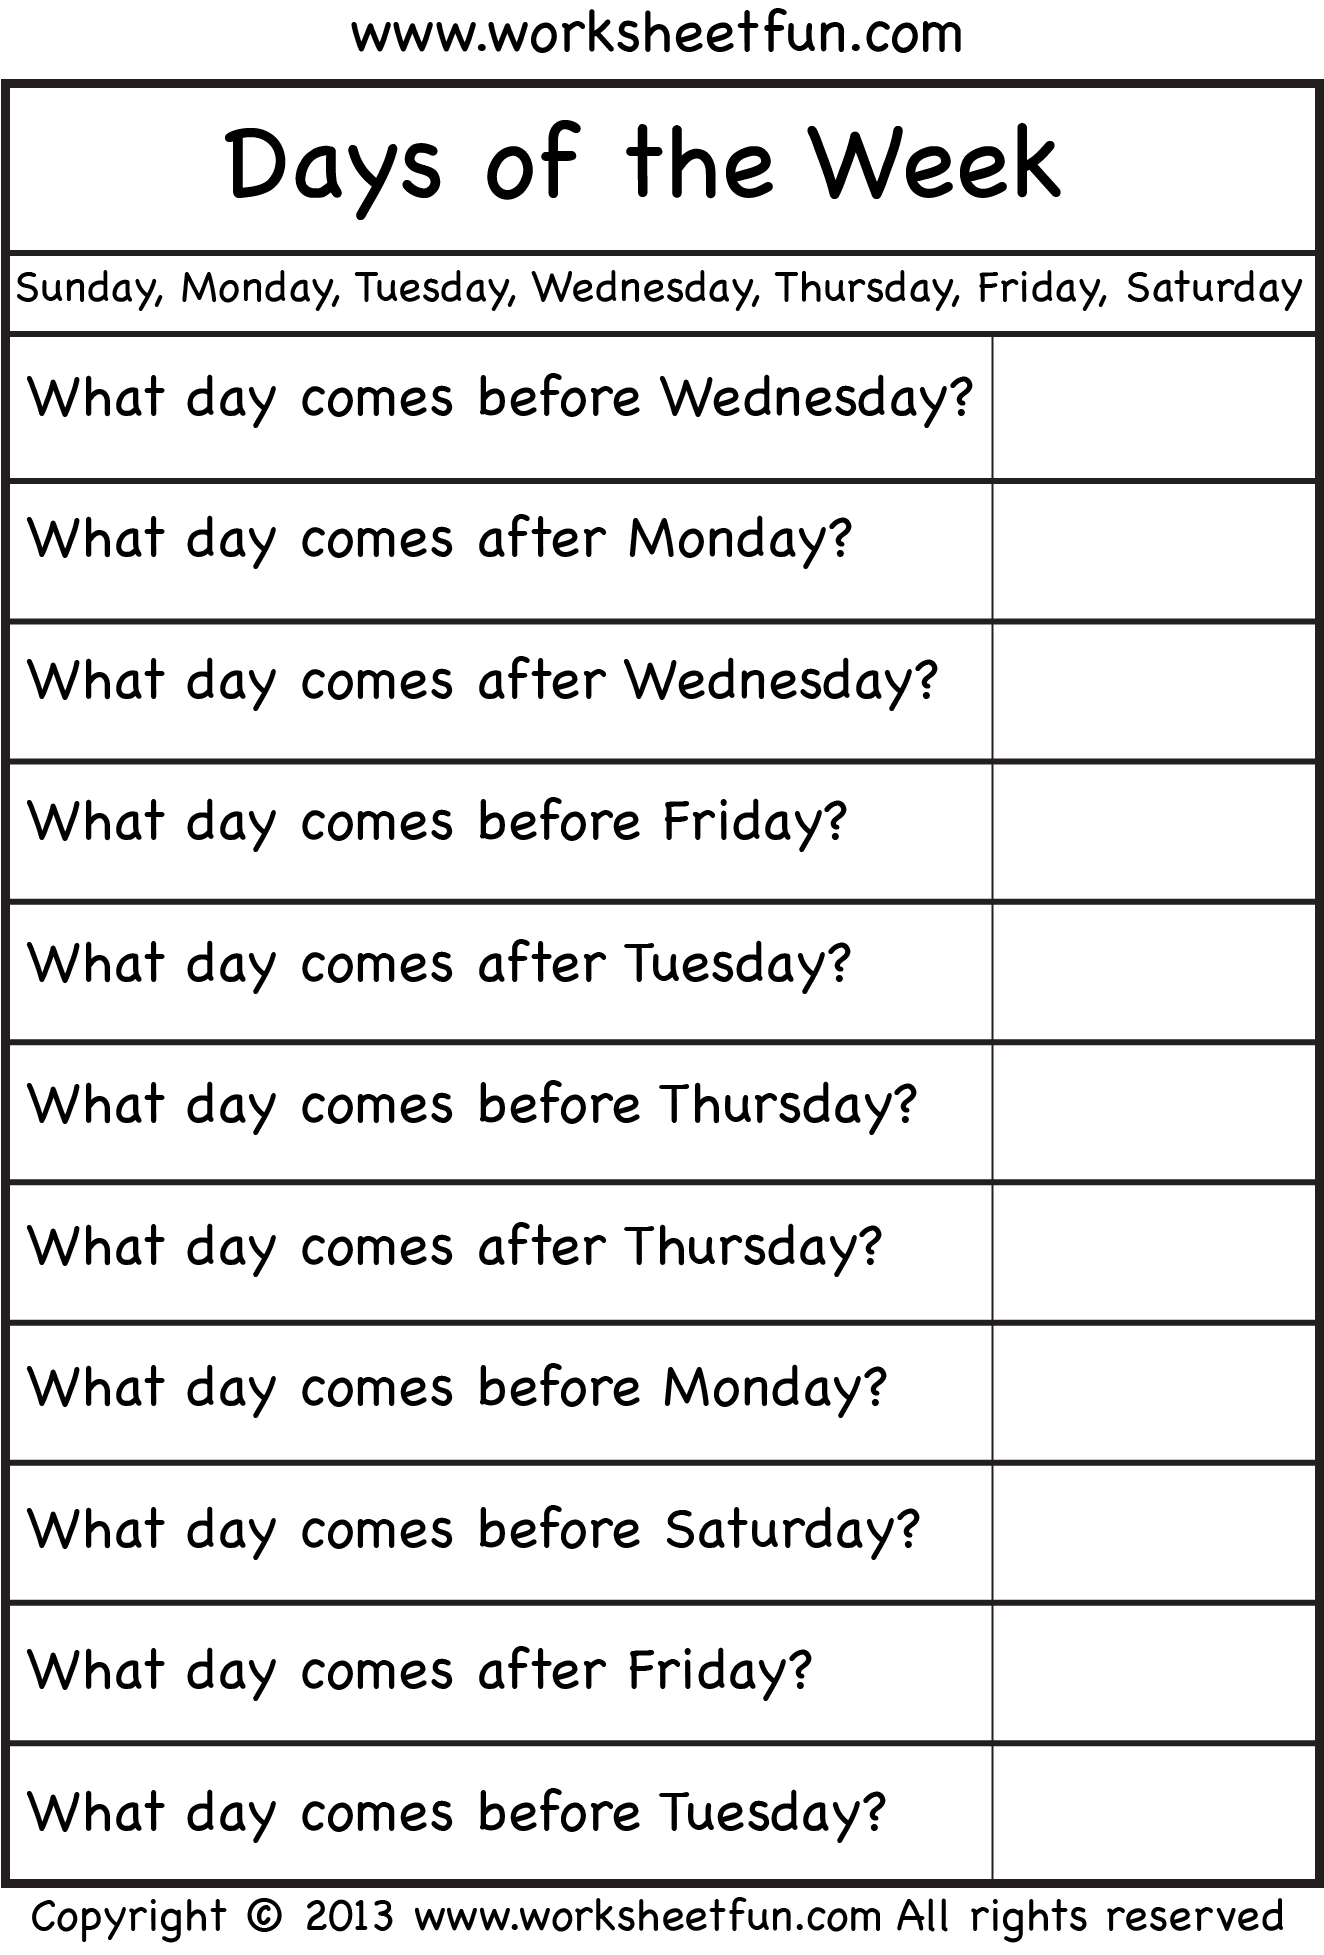 Days Of The Week Worksheet Free Printable Worksheets Worksheetfun